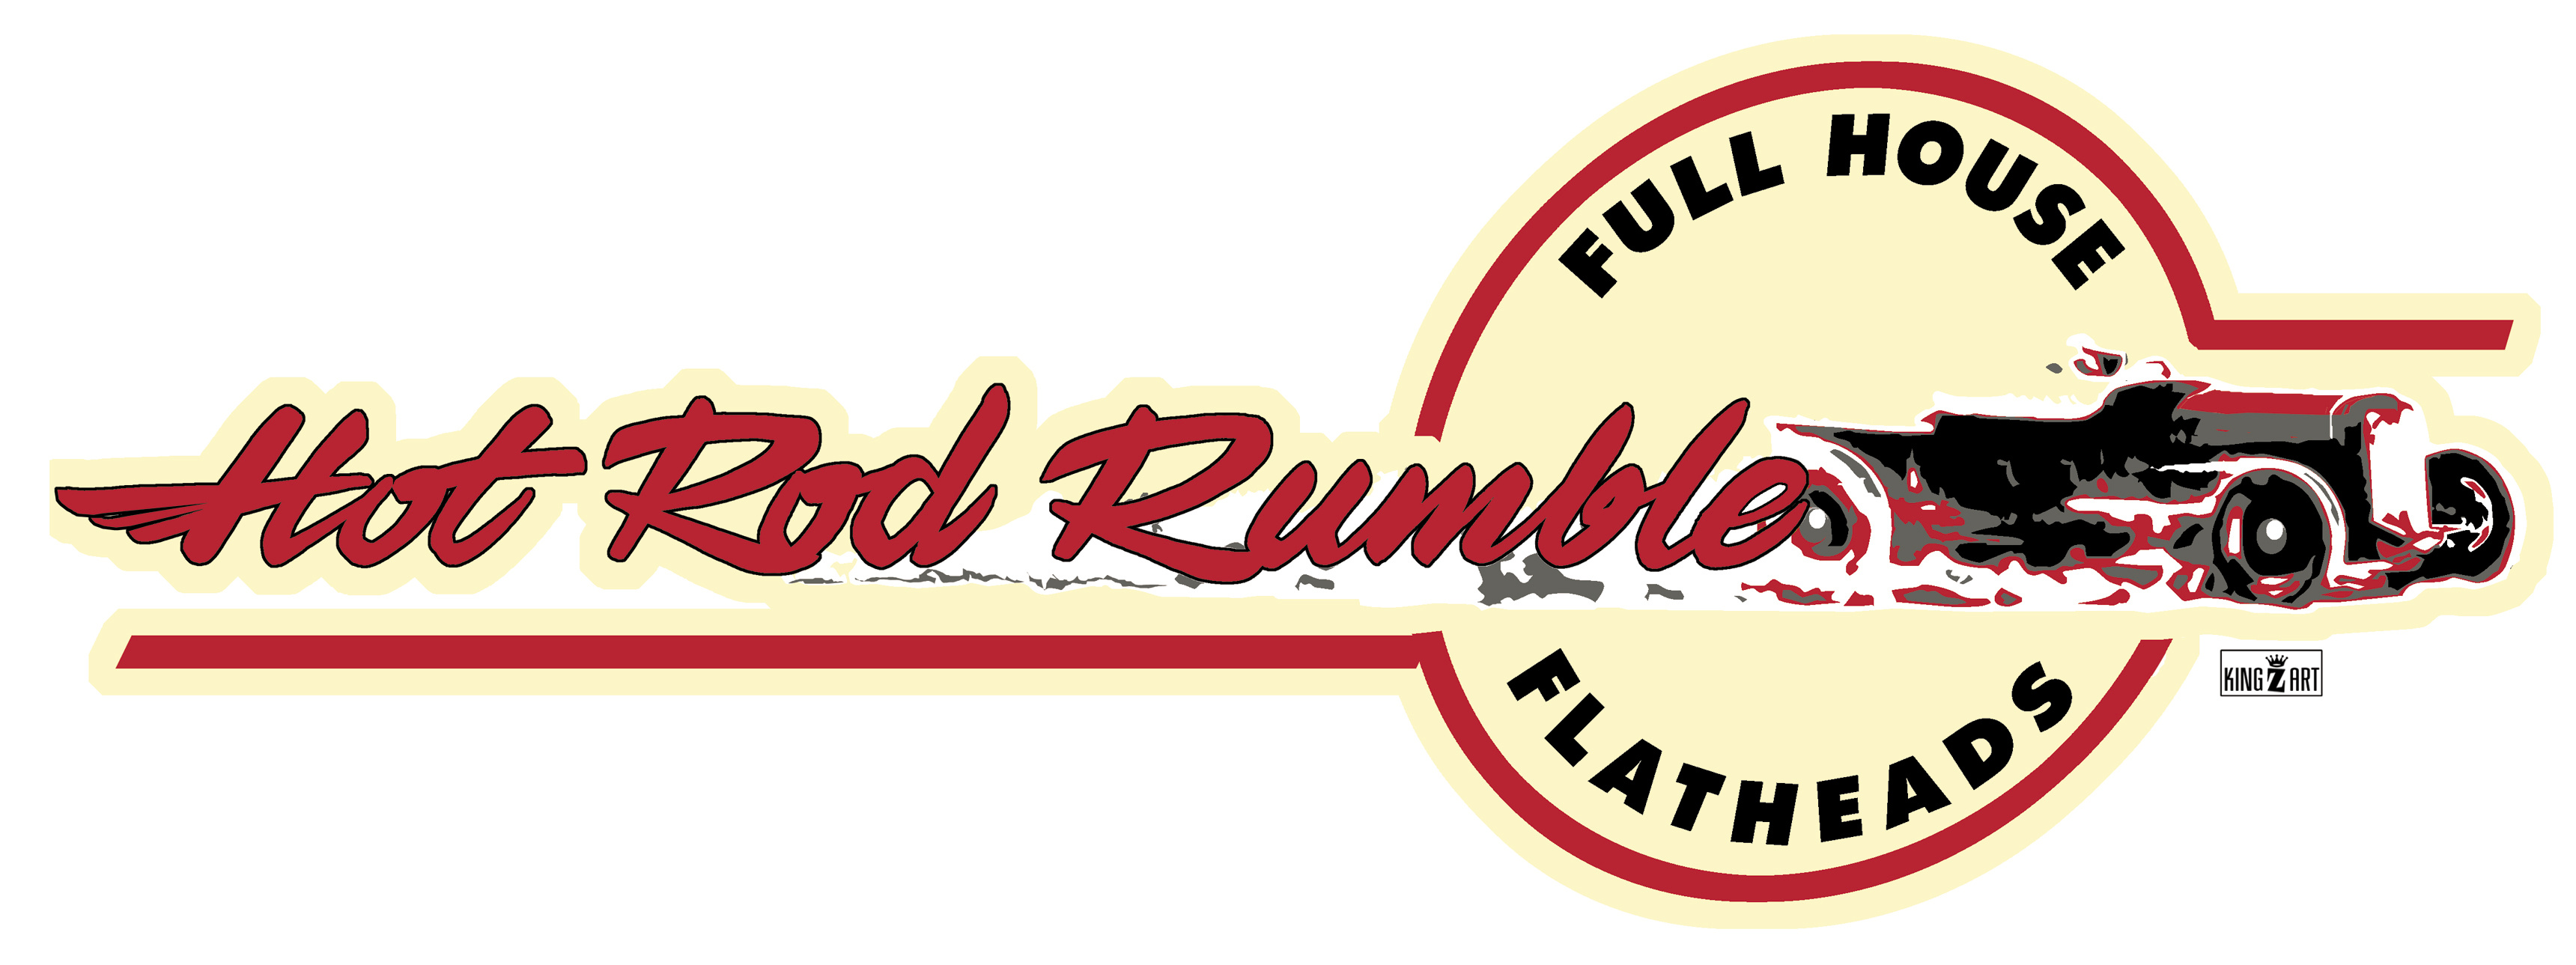 Wizzzcraft brushworks Rumble